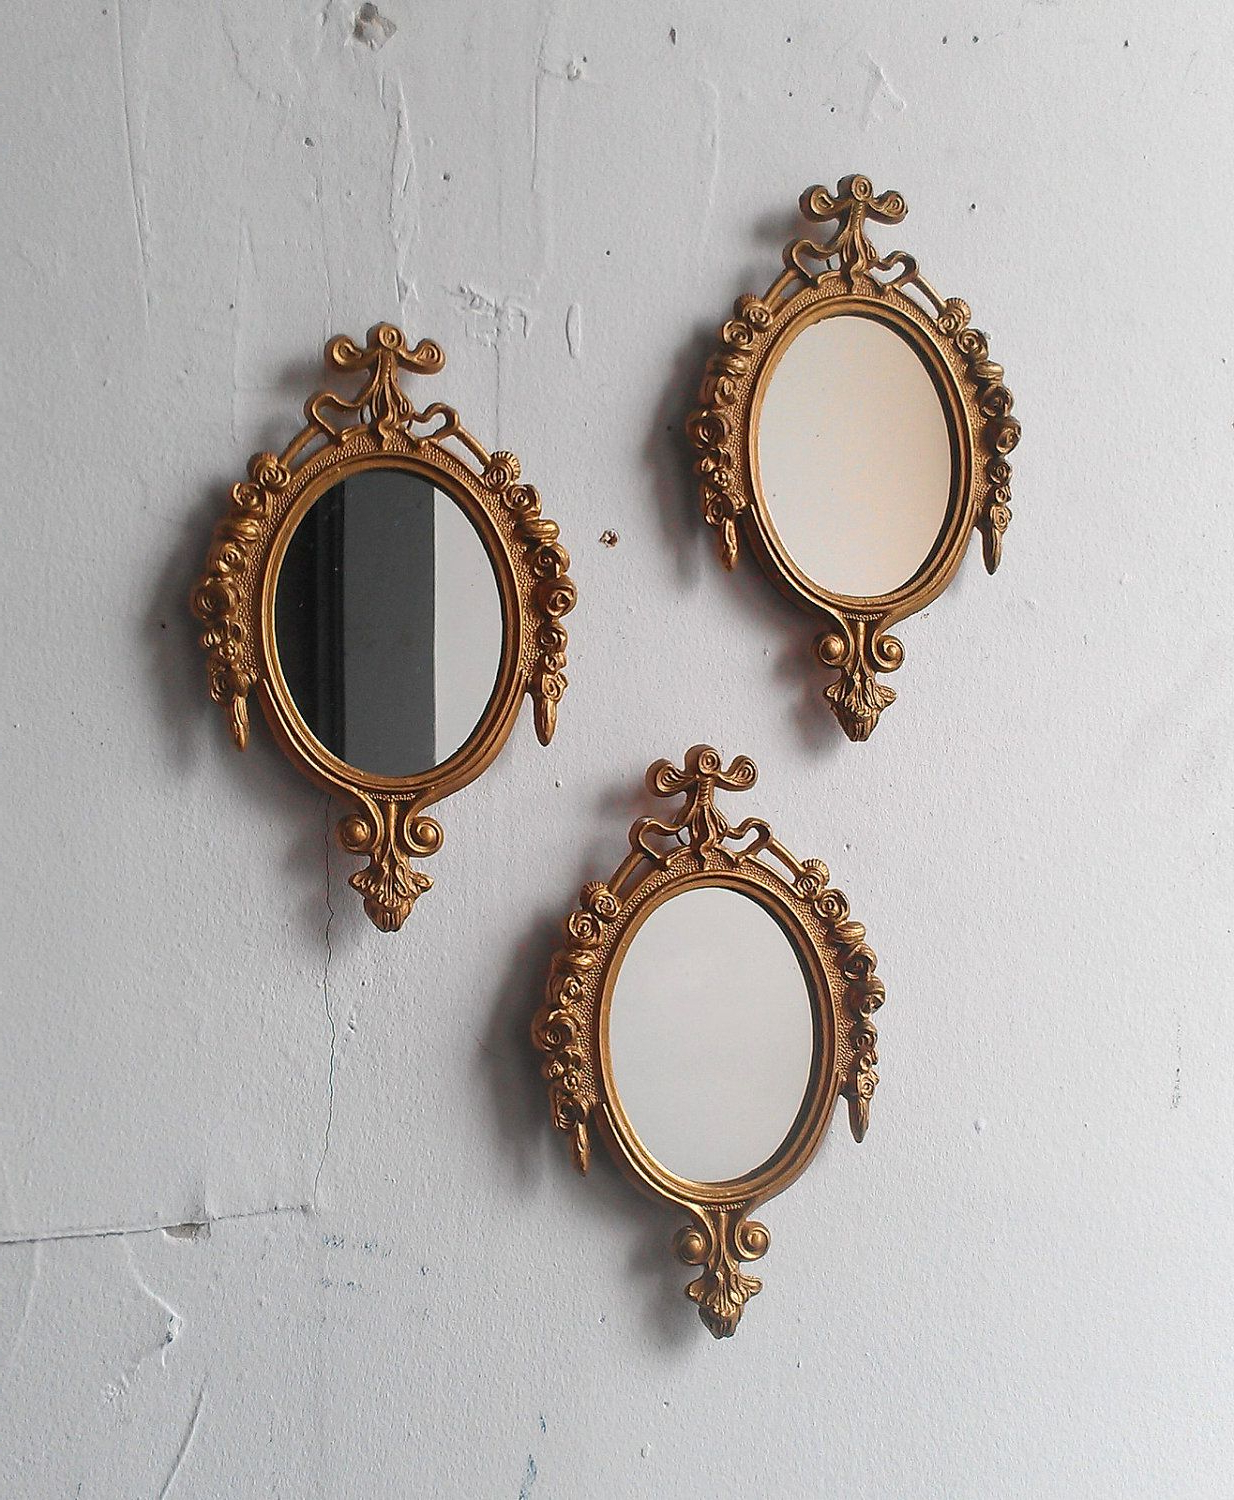 Preferred Small Decorative Wall Mirrors Inside Gold Mirror Set In Small Decorative Vintage Frames, Home (View 14 of 20)